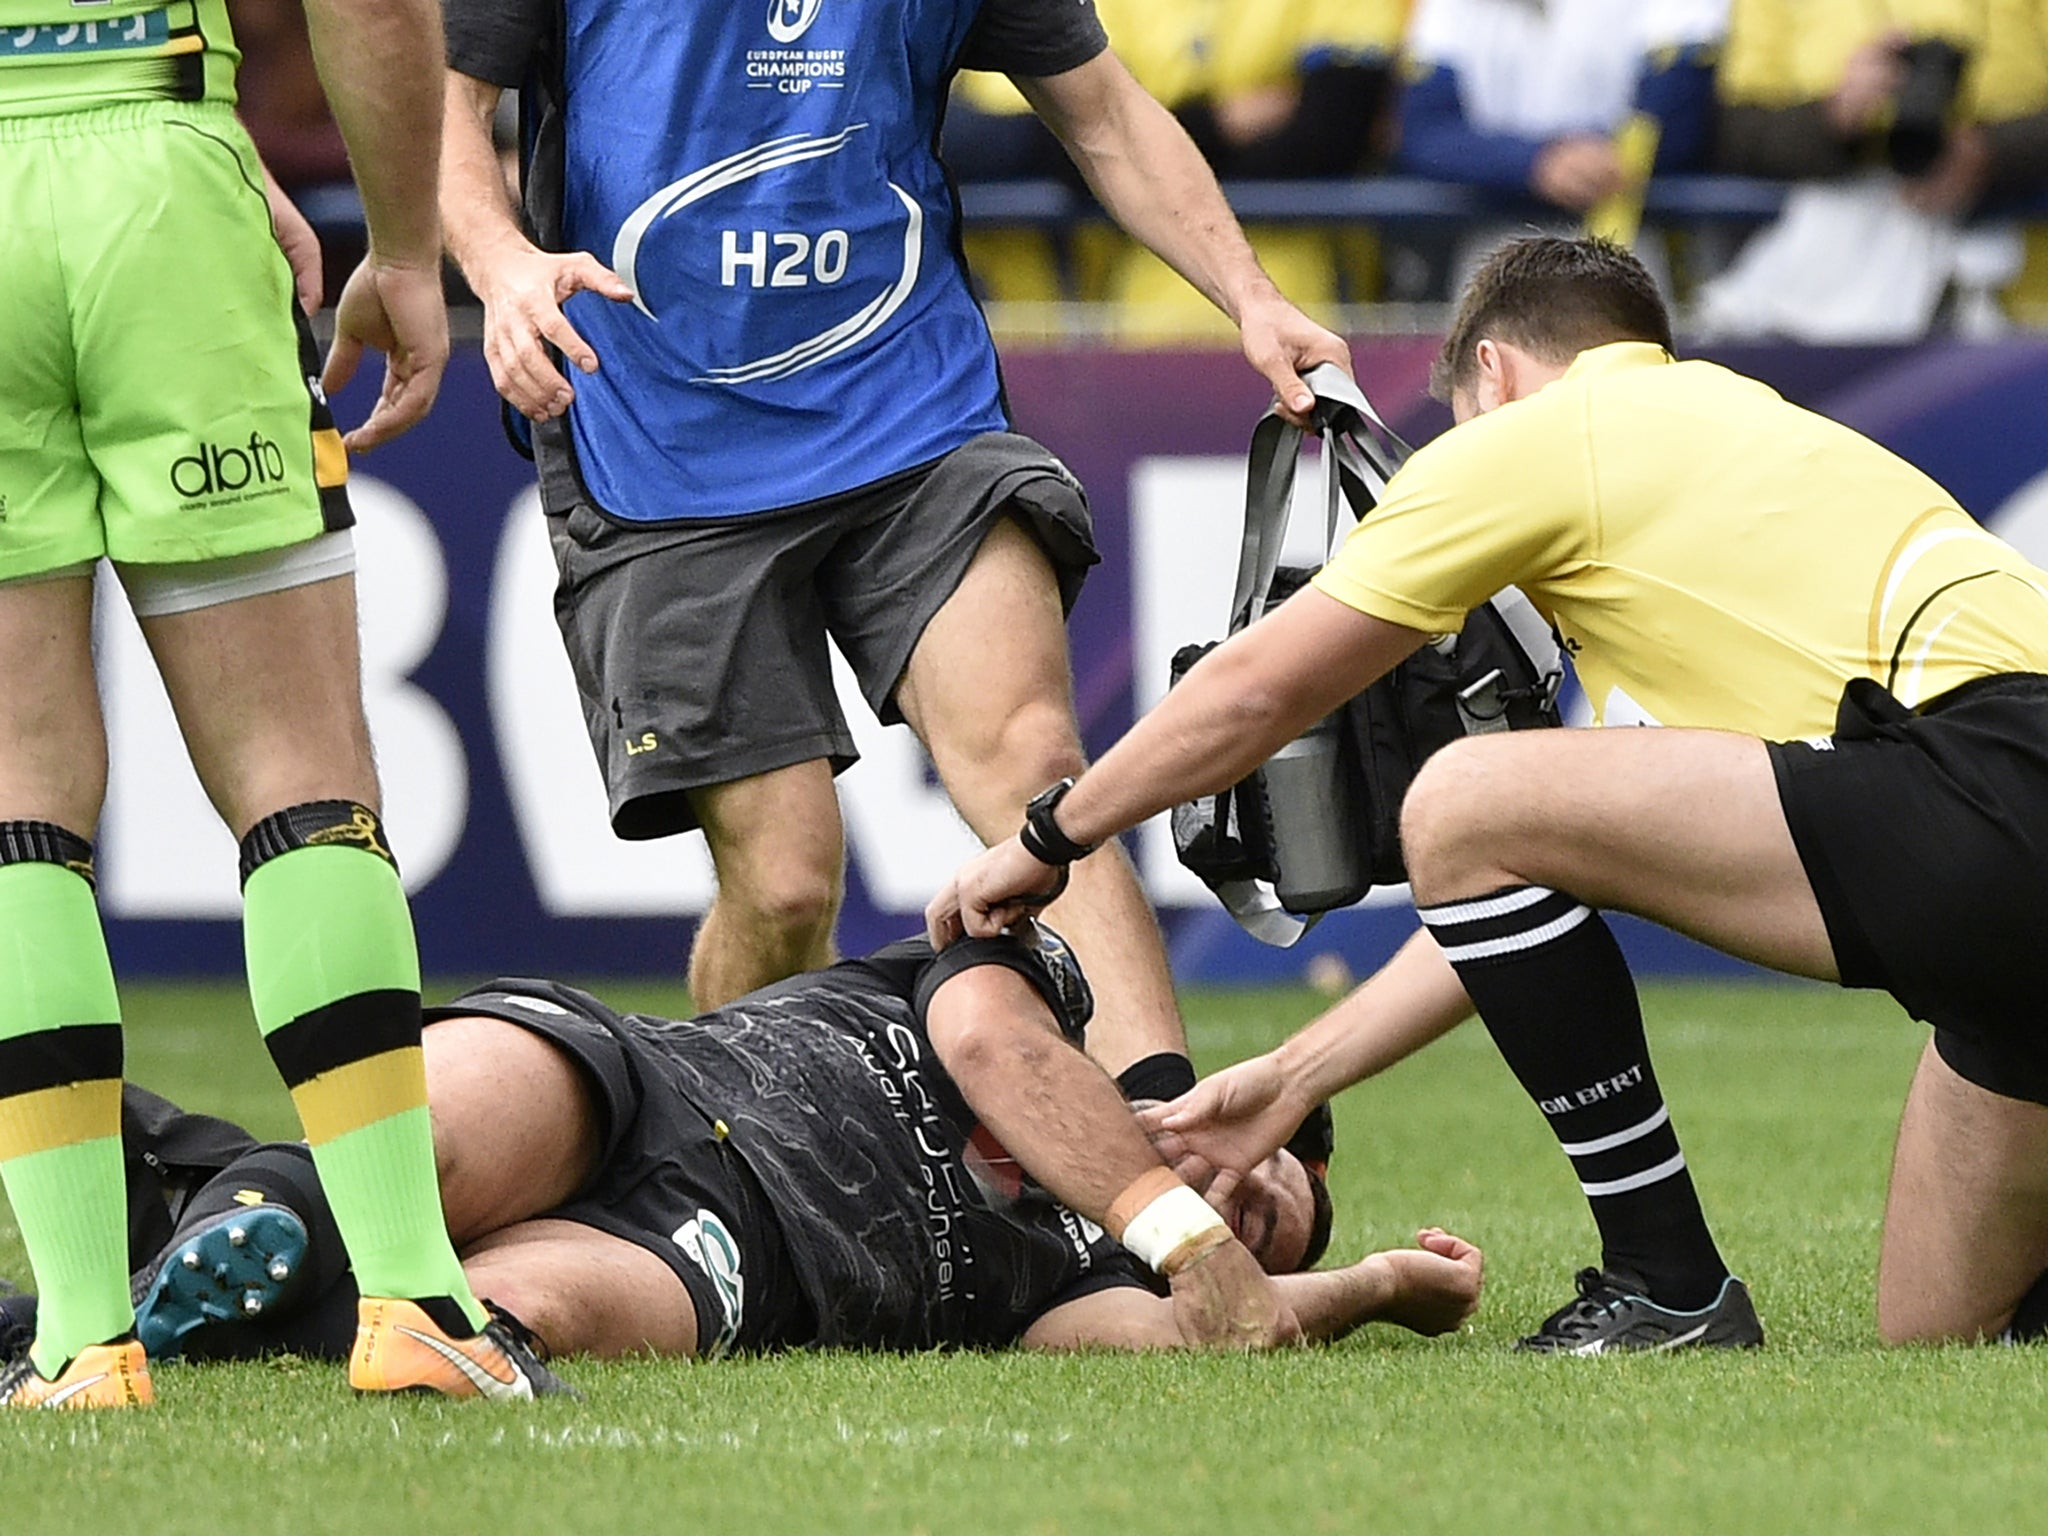 A rugby player laying on the field after an injury